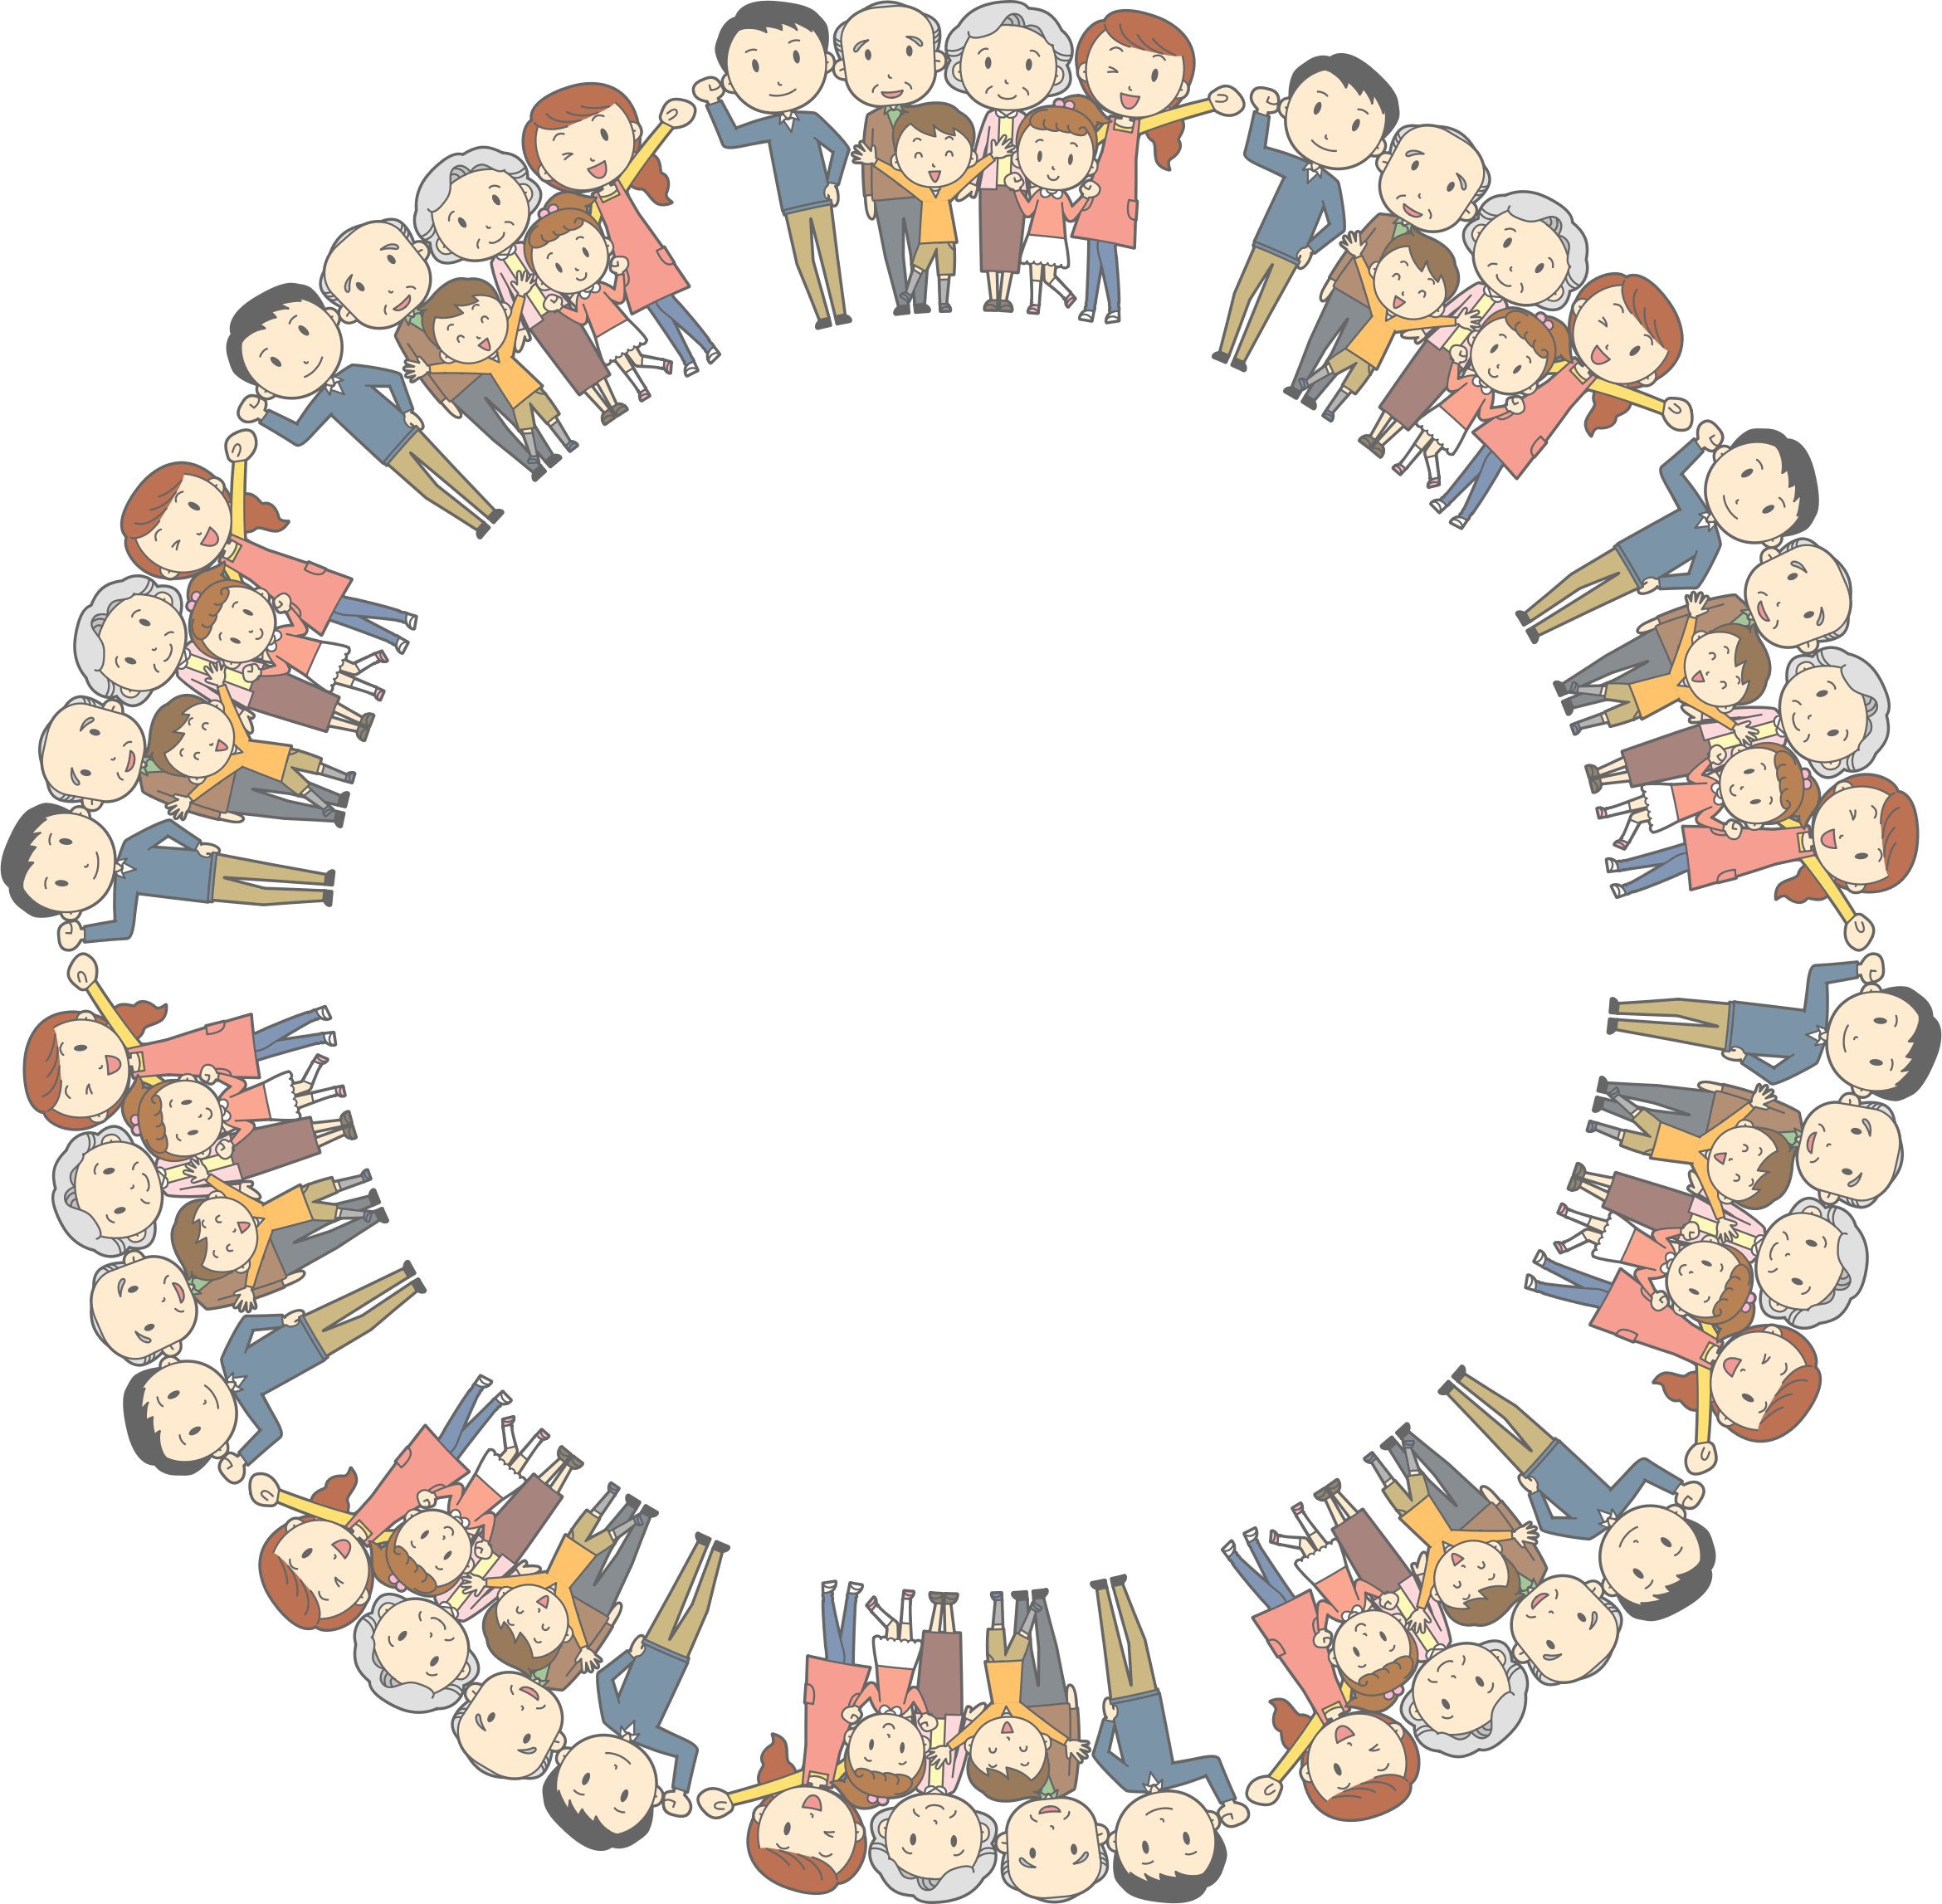 Families clipart frame. Multigenerational family circle big